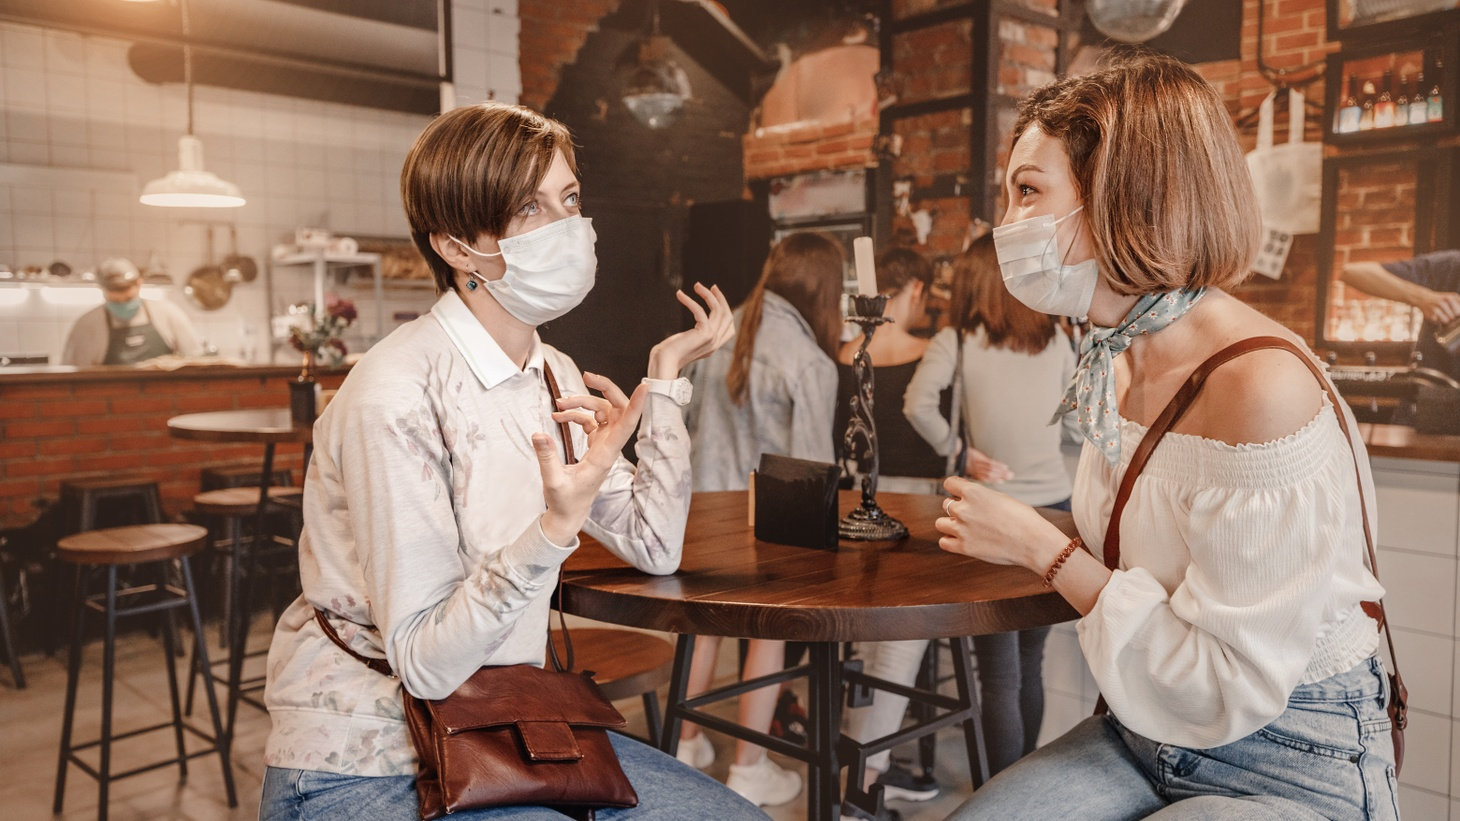 """People should wear masks indoors as """"we don't know how many of the people that do go out to restaurants and go out to movies are vaccinated,"""" says Dr. Veronica Contreras, urgent care physician with AltaMed Health Services."""